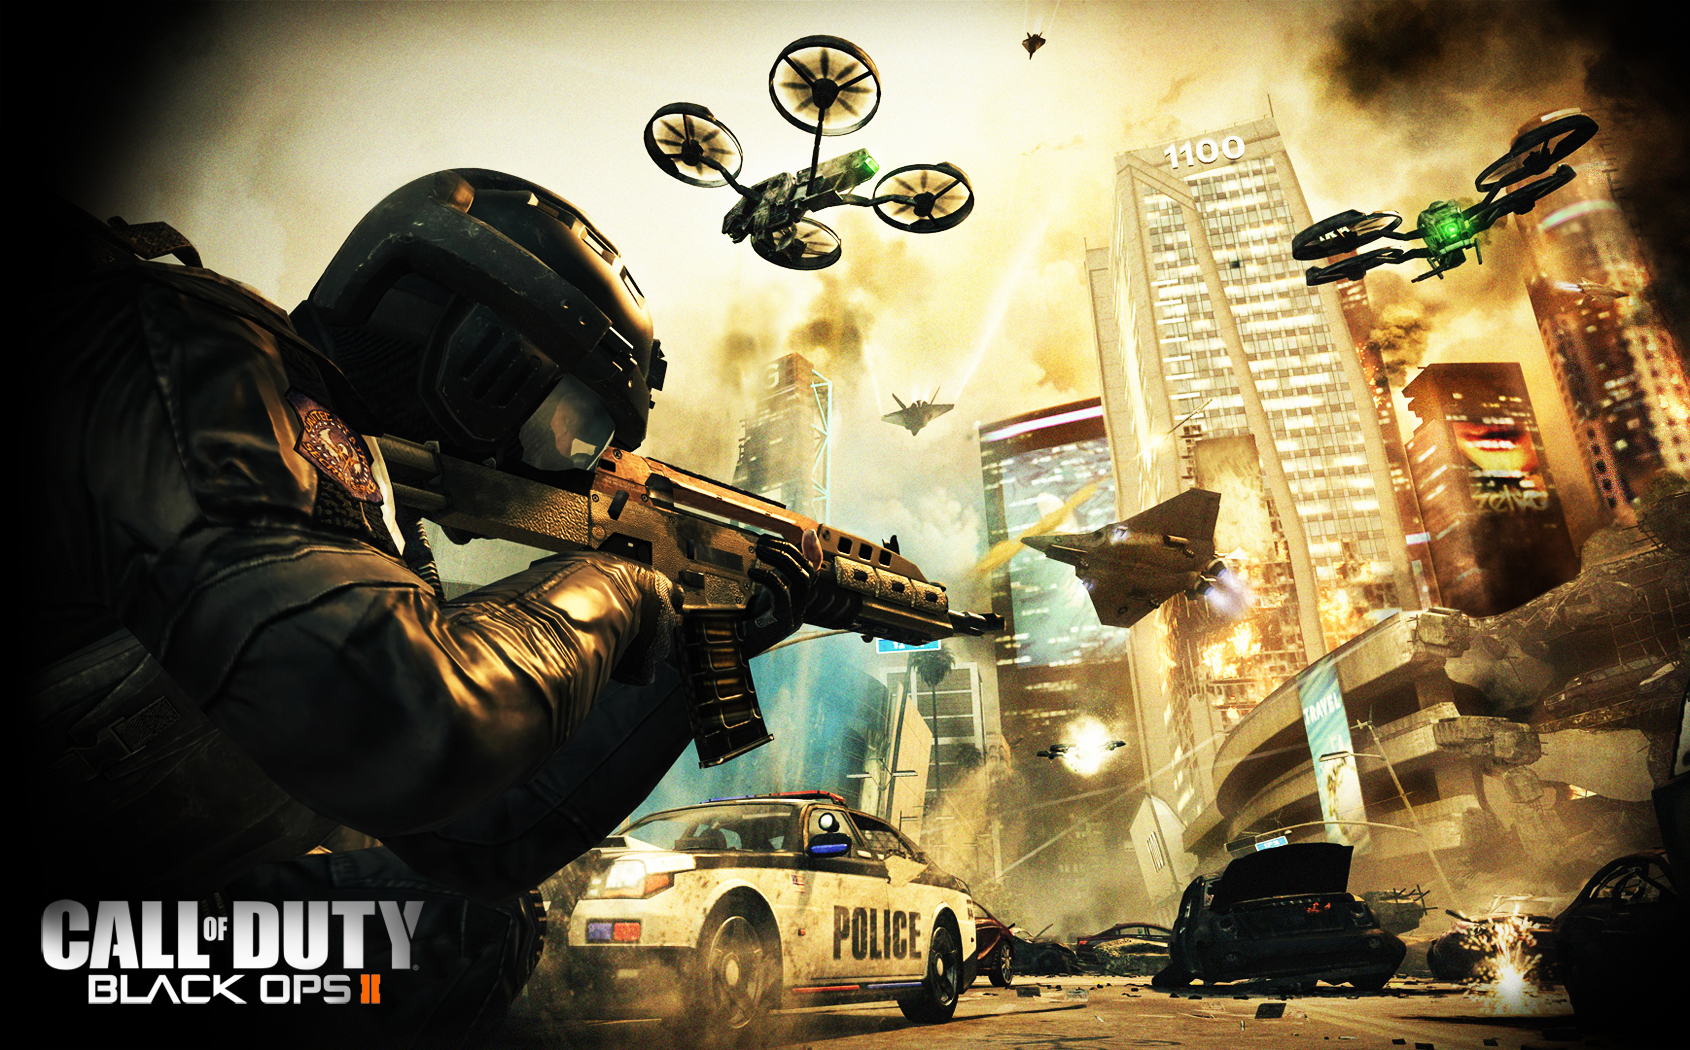 Call of Duty Black Ops 2 wallpaper 4